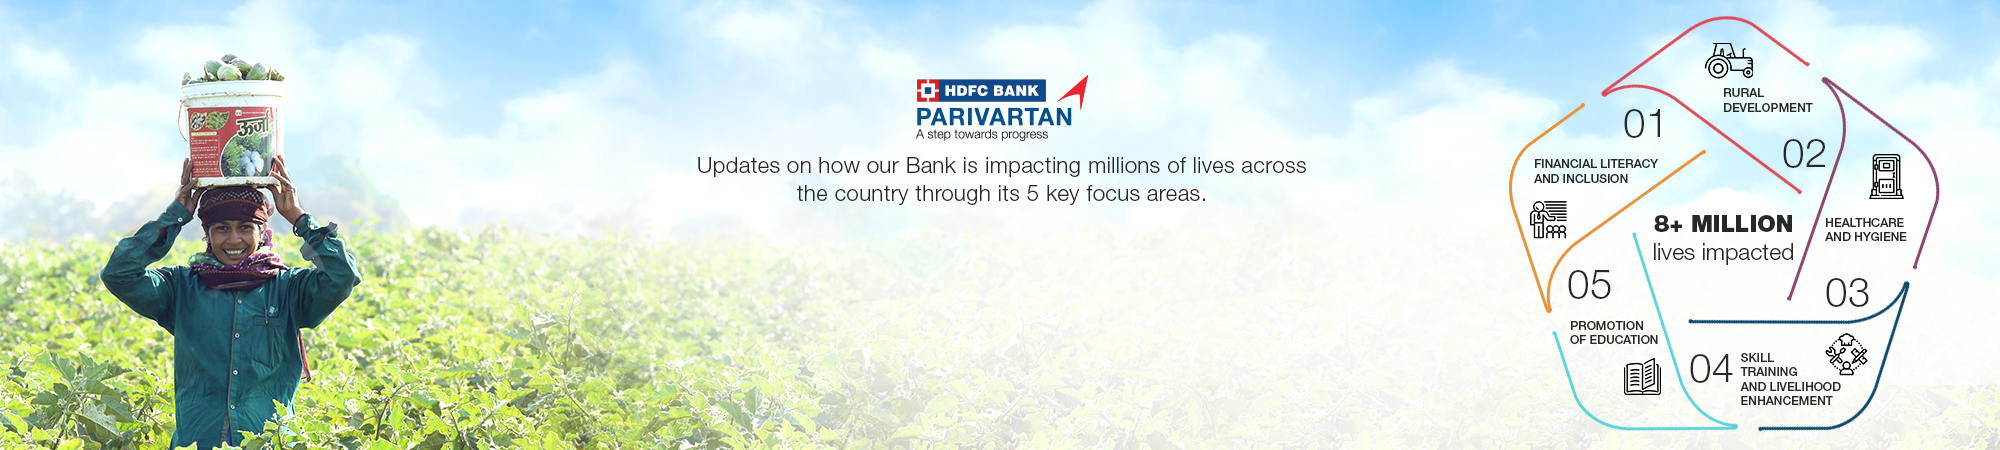 HDFC Bank Parivartan transforms 5 villages in Mandla, MP